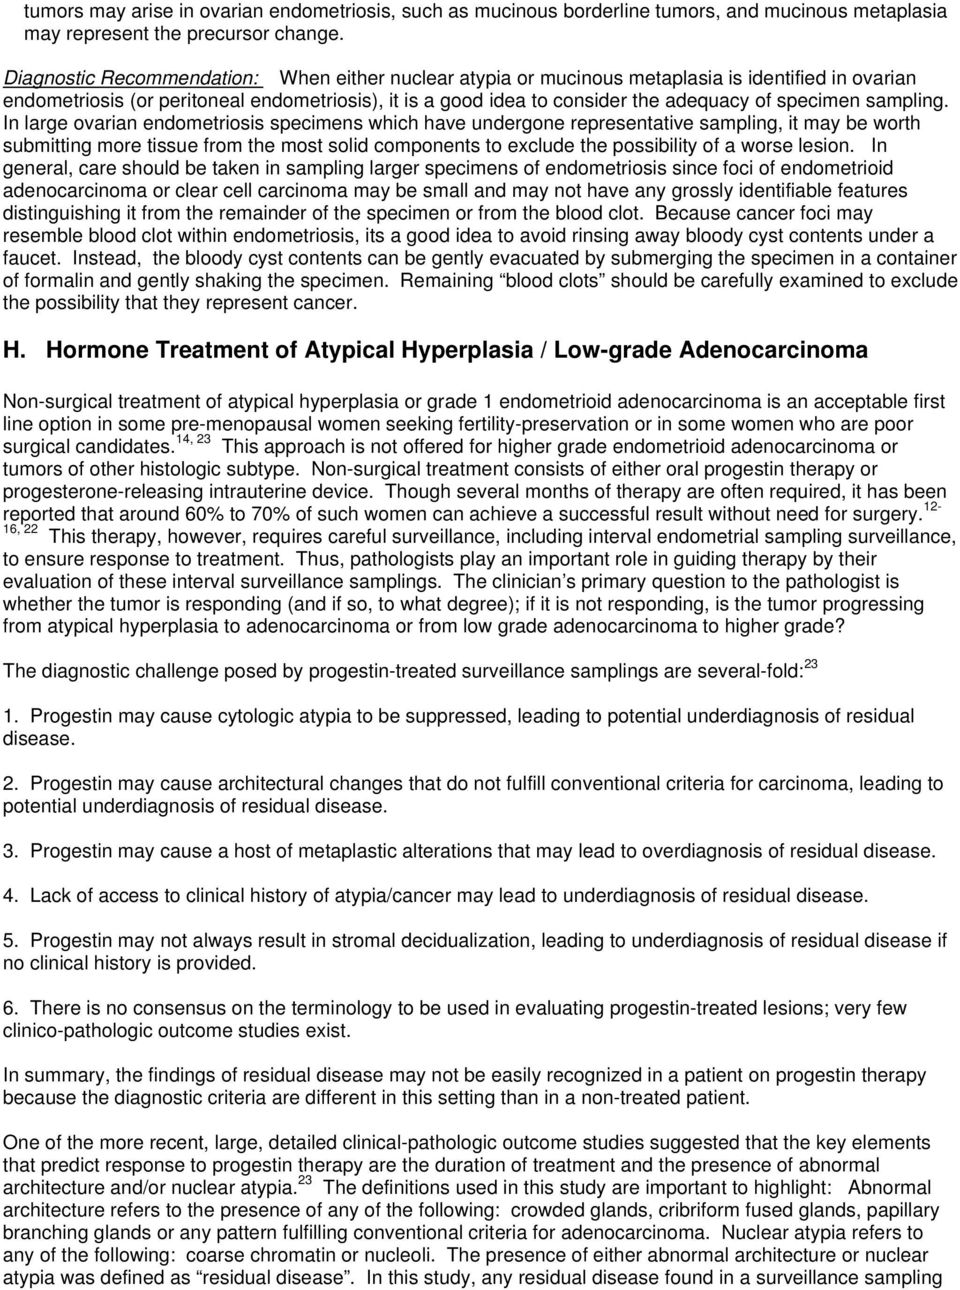 Diagnosis of hyperplasia of the glandular epithelium and treatment methods